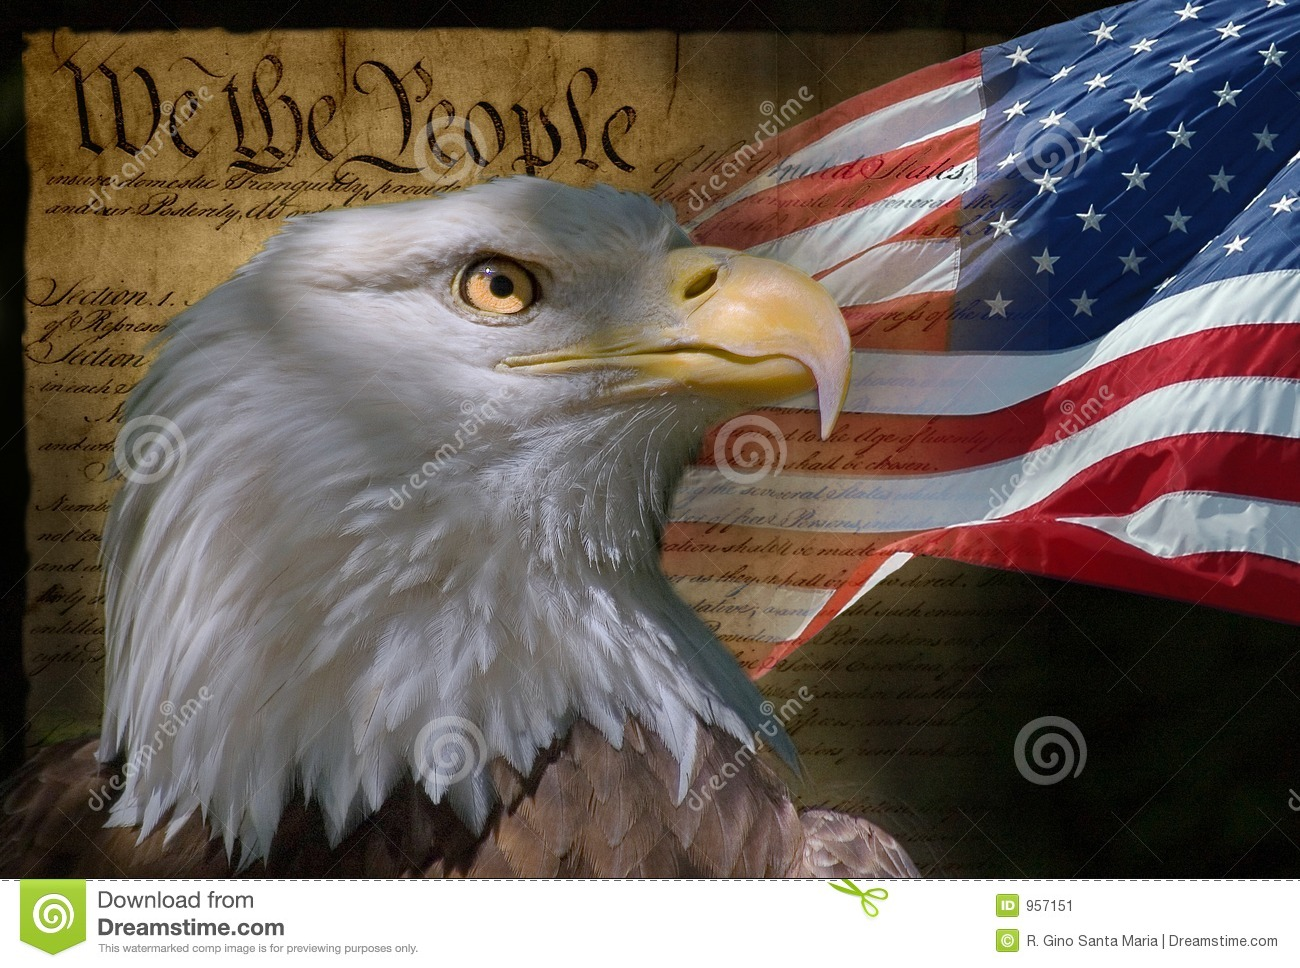 We The People Stock Image - Image: 957151